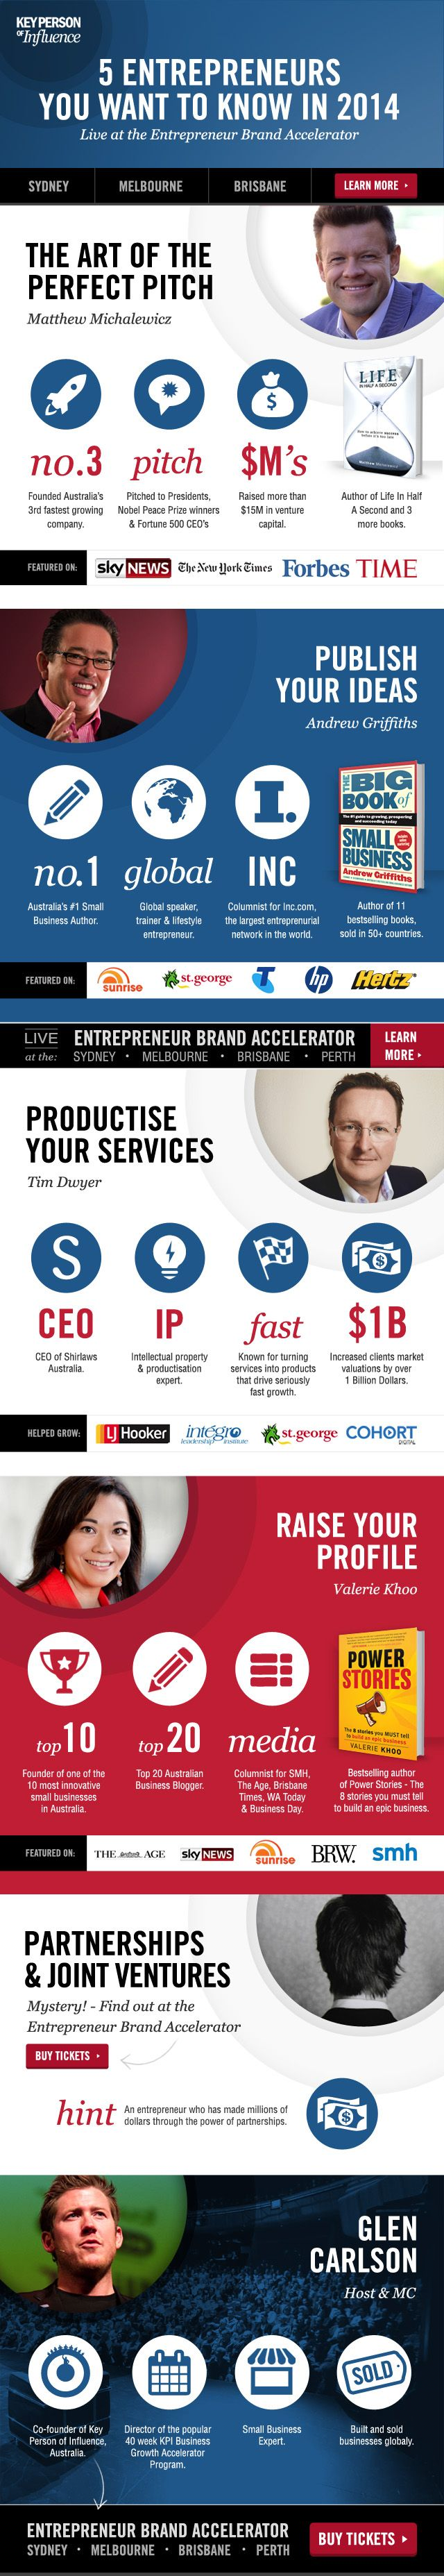 5 entrepreneurs you want to know in 2014. Meet them at our upcoming Brand Accelerators in Sydney, Melbourne and Brisbane. www.keypersonofinfluence.com.au #kpimethod #kpiday